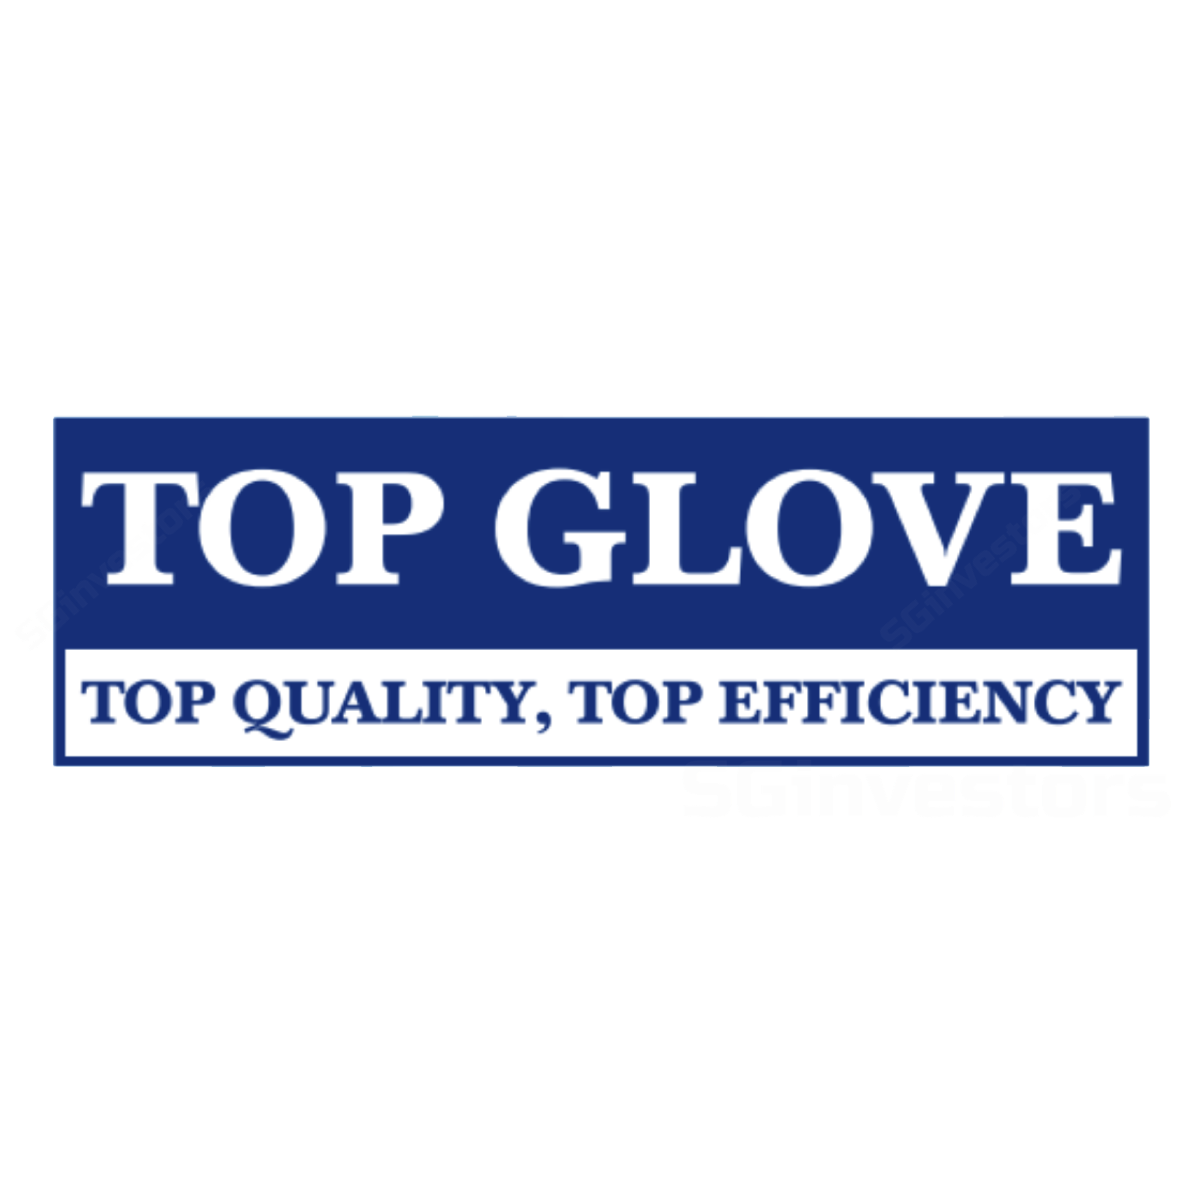 TOP GLOVE CORPORATION BHD (SGX:BVA) | SGinvestors.io